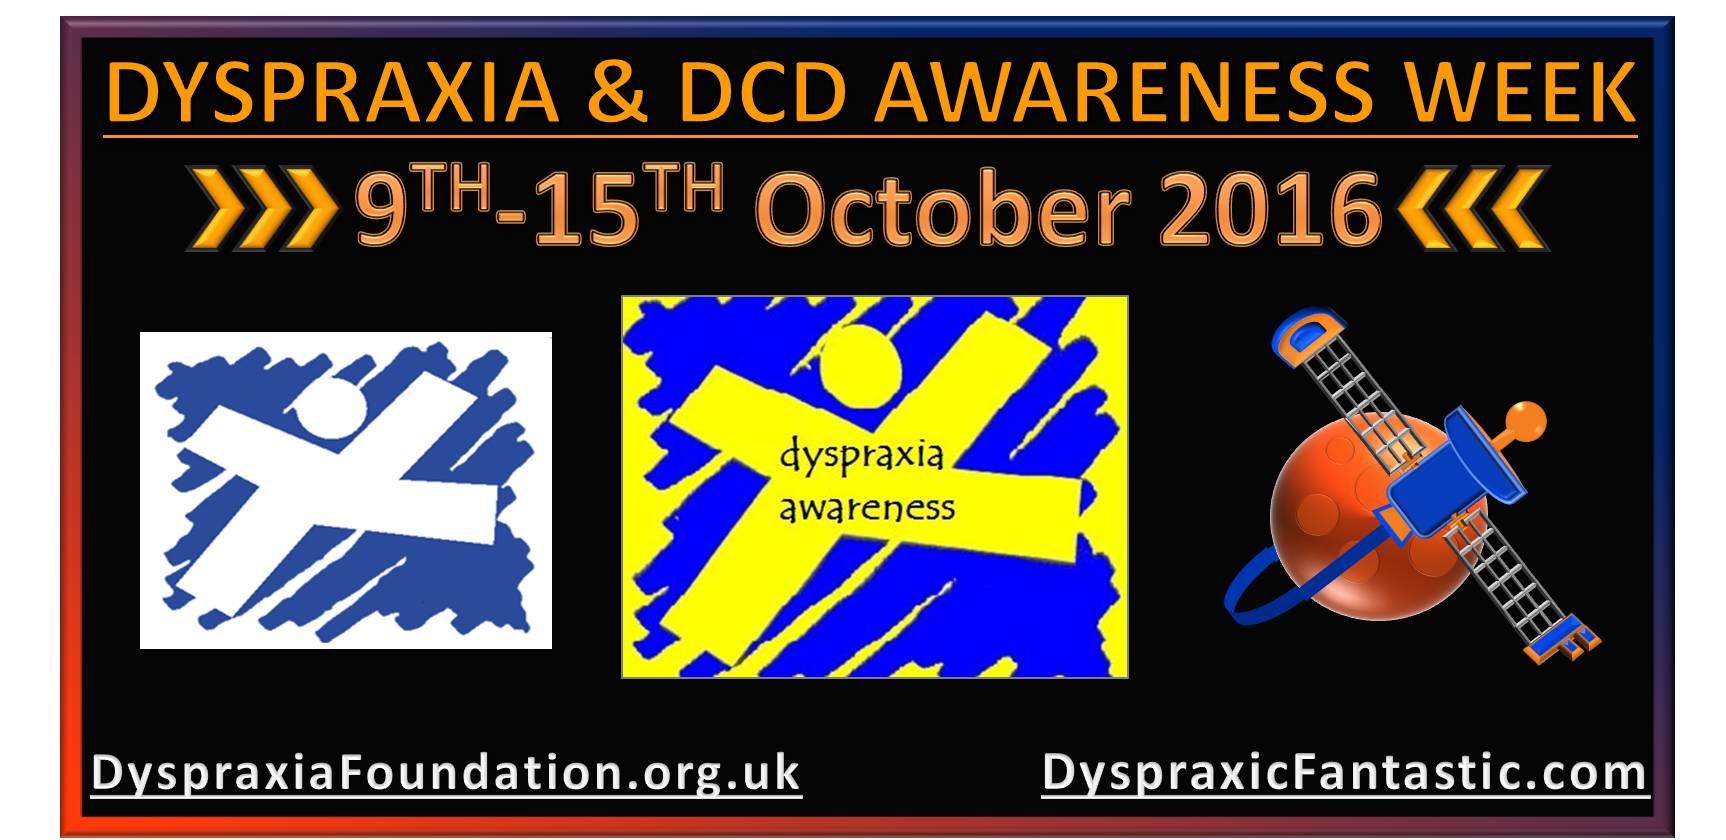 dyspraxia-awareness-resize